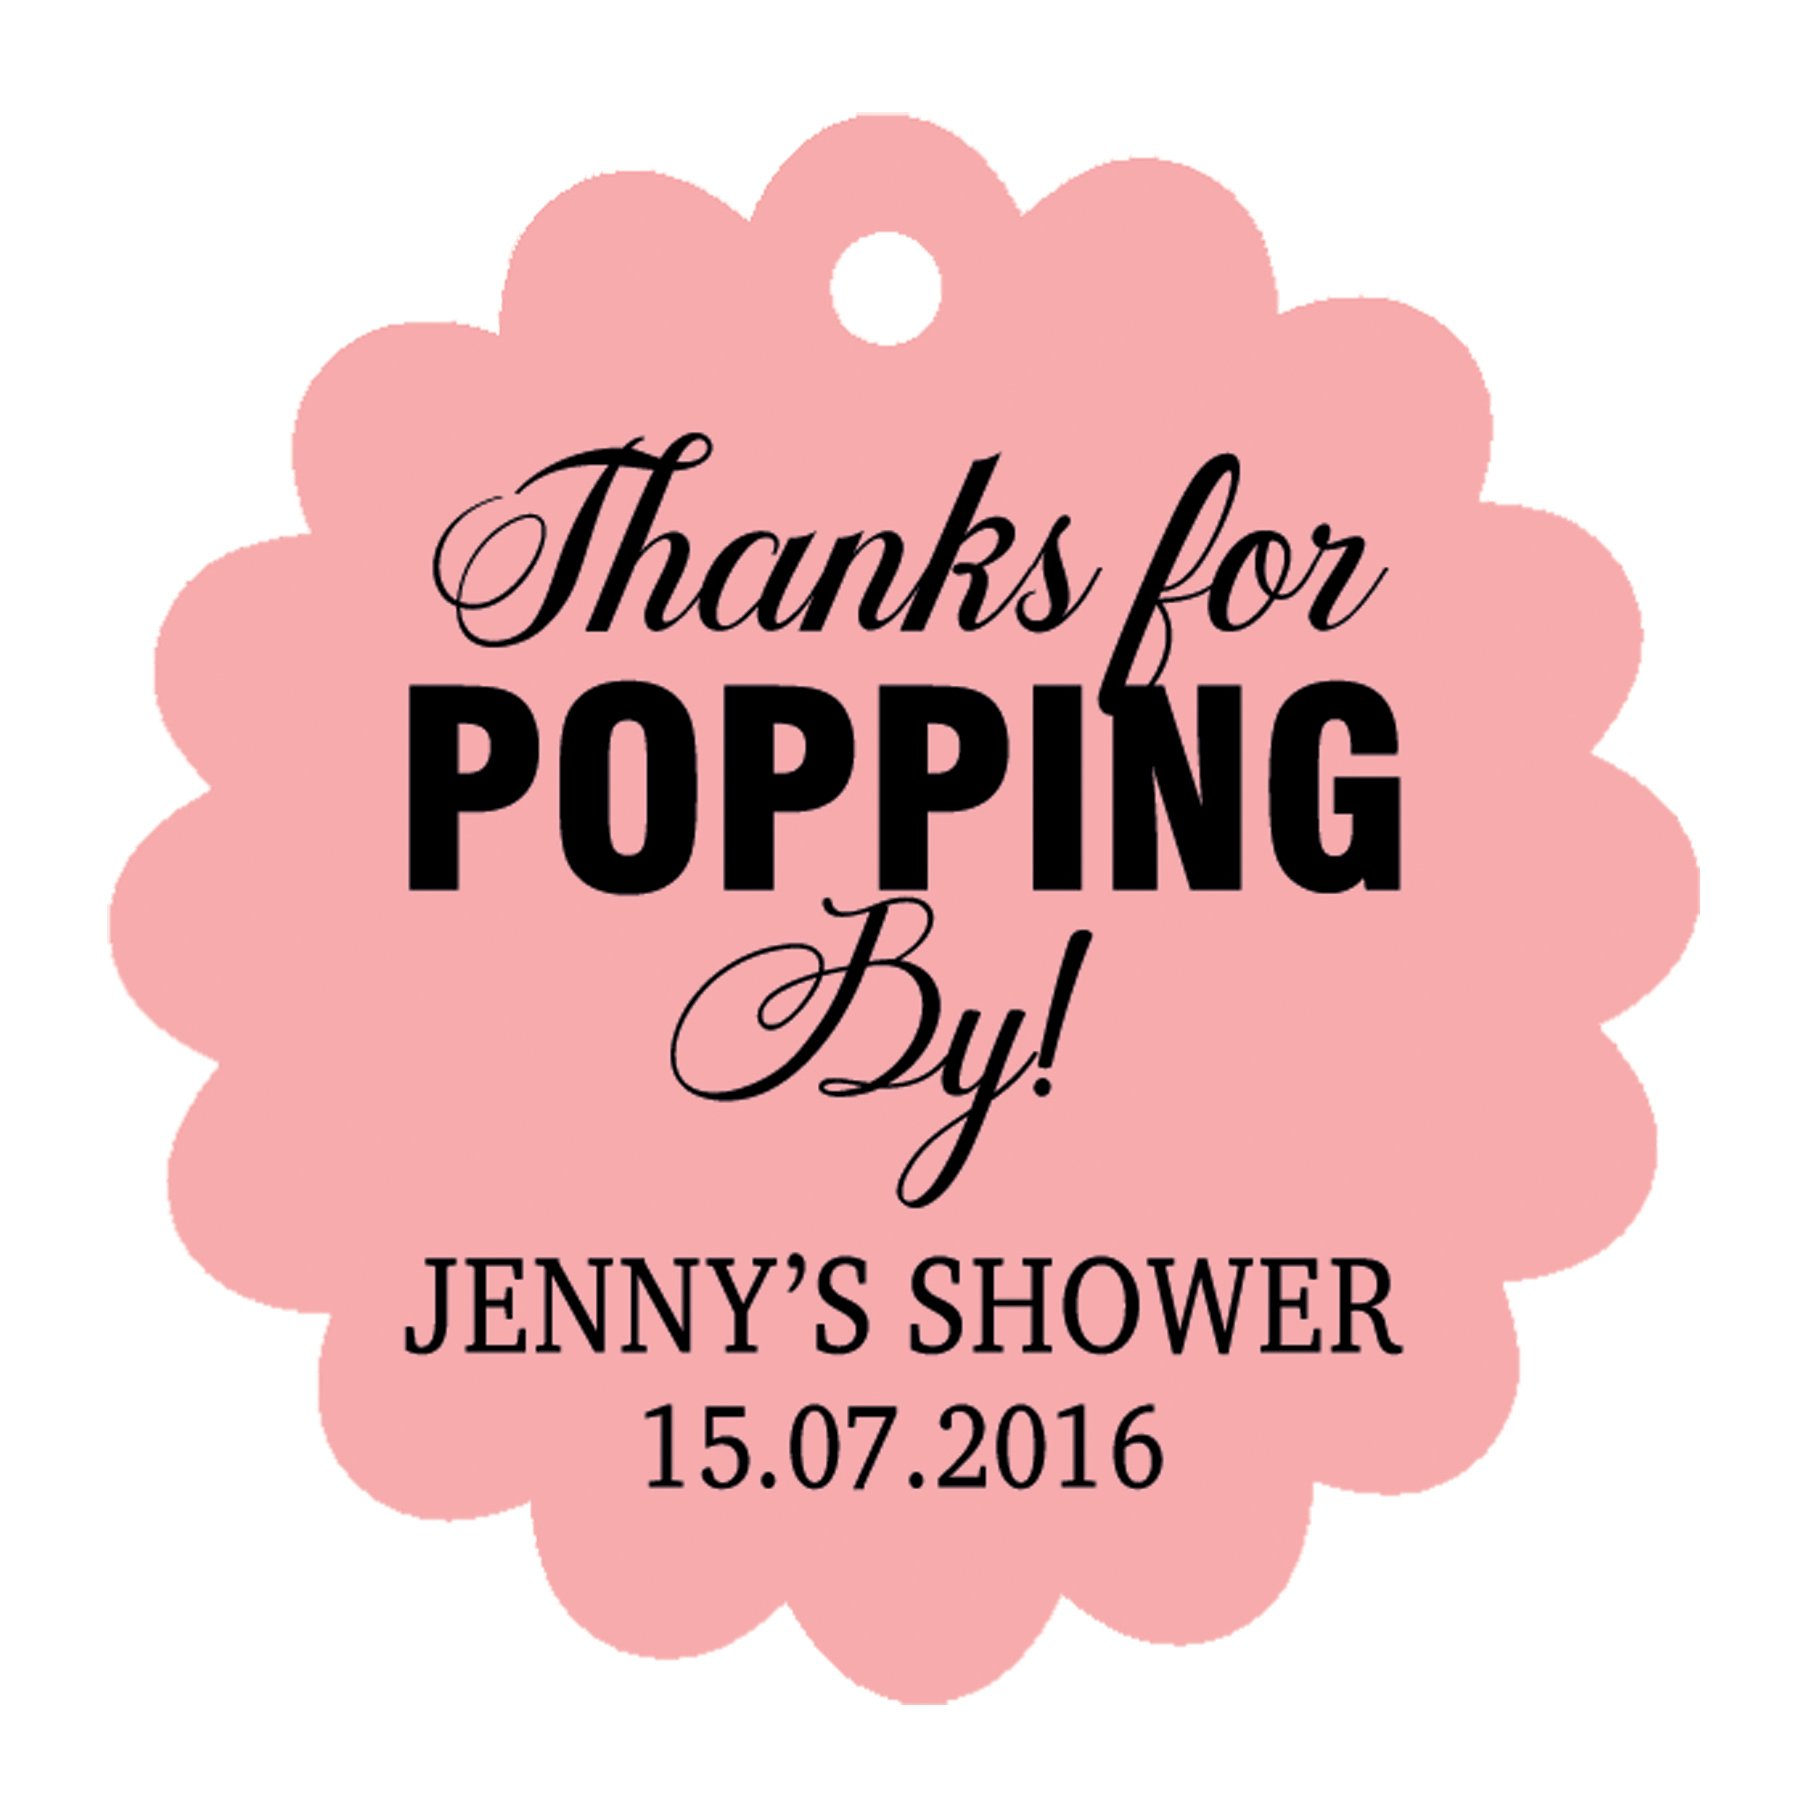 100�pcs Personalized Baby Shower Favors Etichette Personalizzate Scritta Thank You per Popping Baby